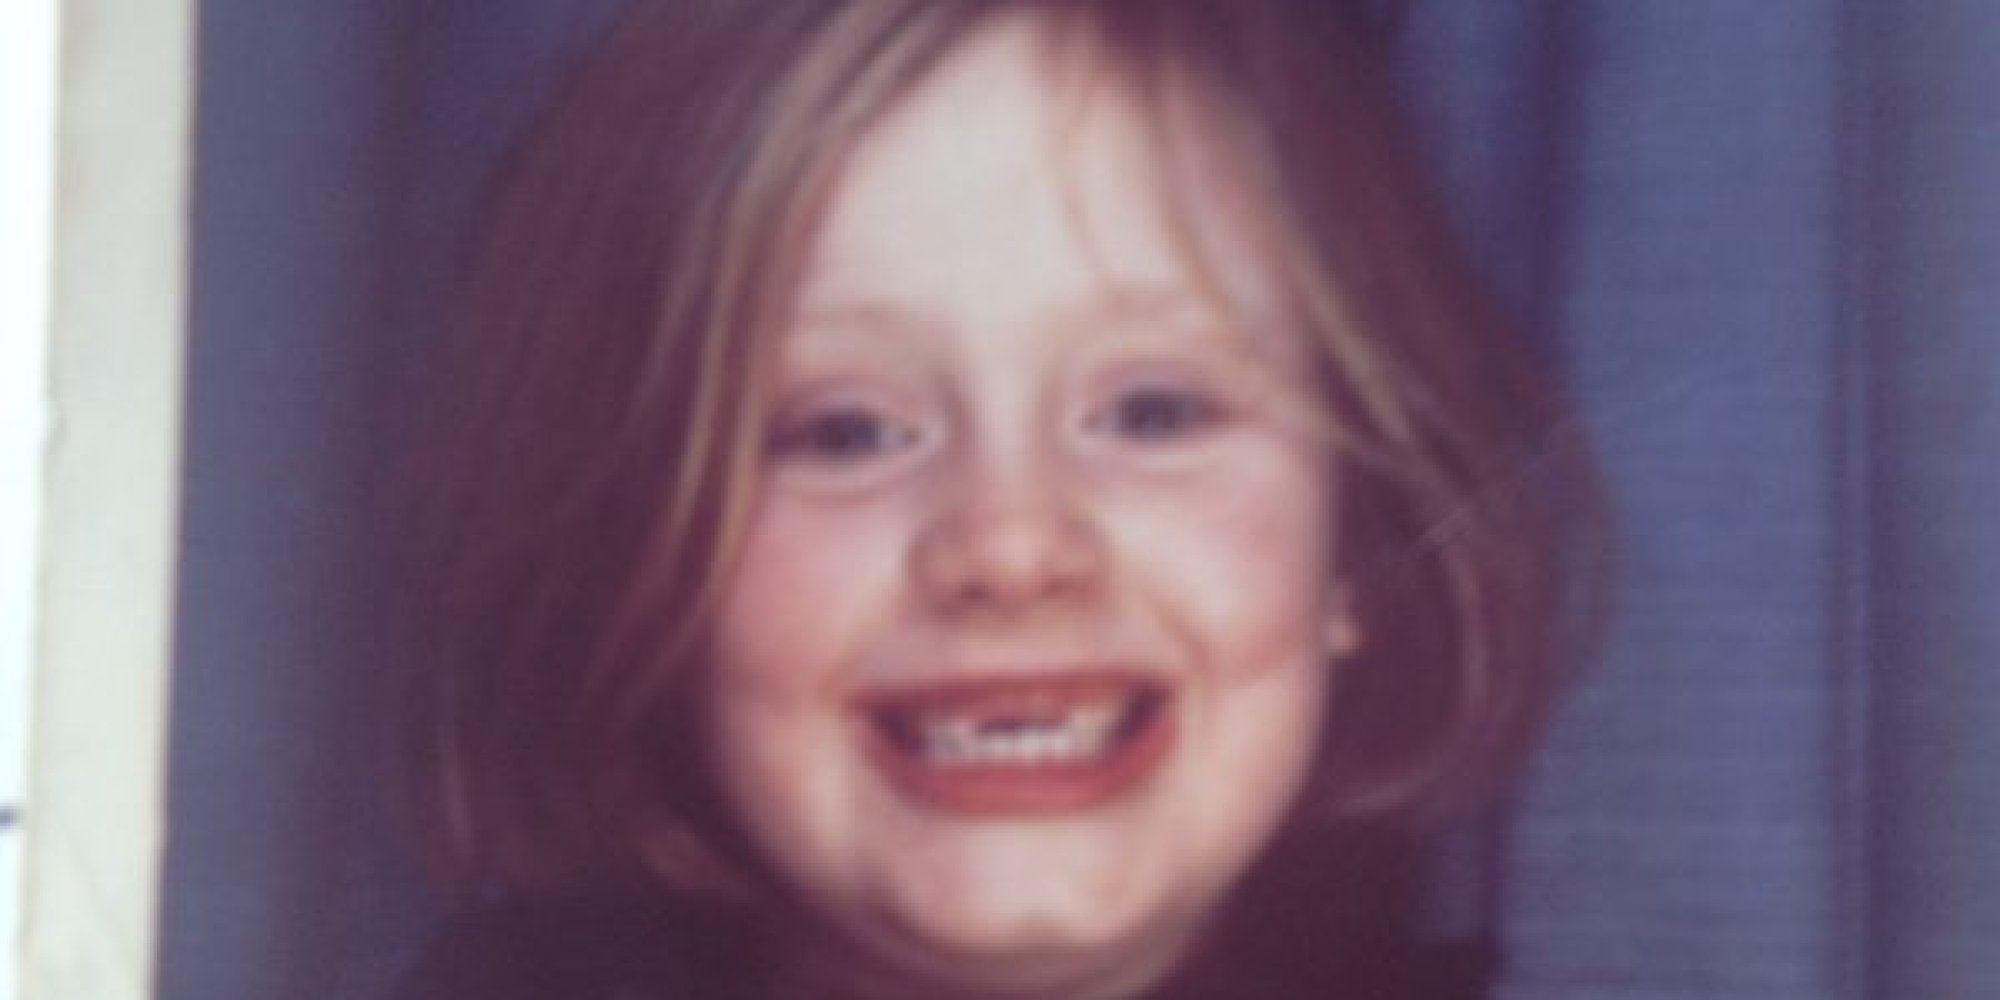 Adele Shares Adorable Childhood Photo on Twitter, As ...